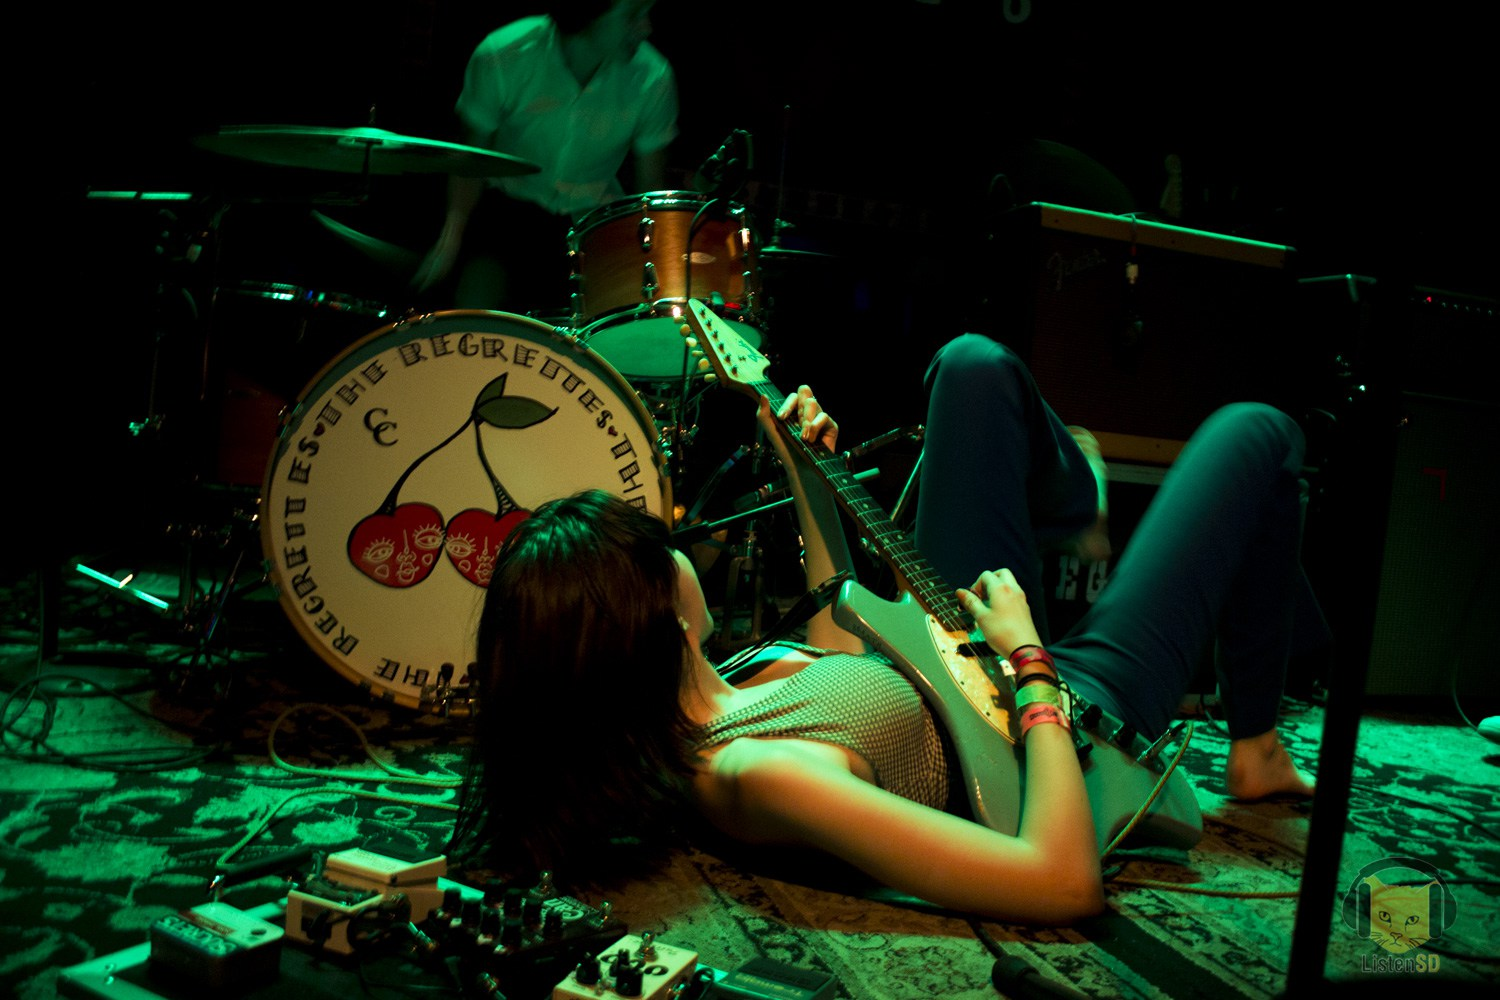 The Regrettes at House of Blues Voodoo Room - Los Angeles sweethearts The Regrettes brought the soul of punk and the golden heart of a goddamn good time to House of Blues San Diego's compact and intimate Voodoo Room.